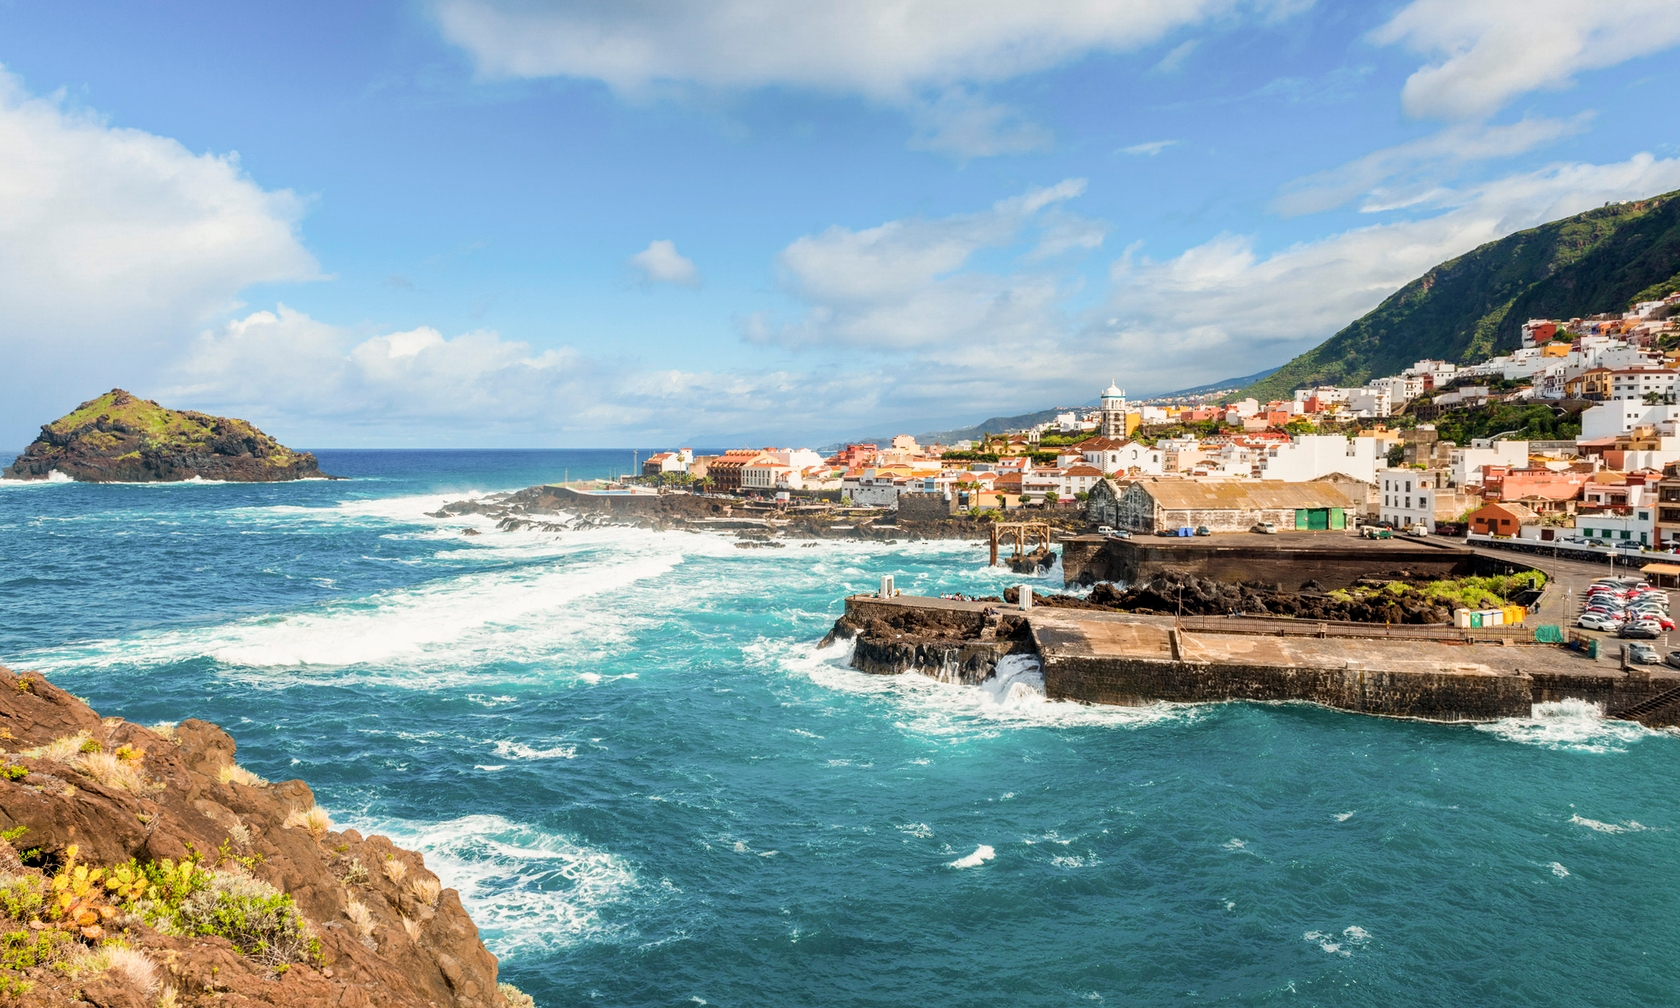 Apartment and condo vacation rentals in Tenerife